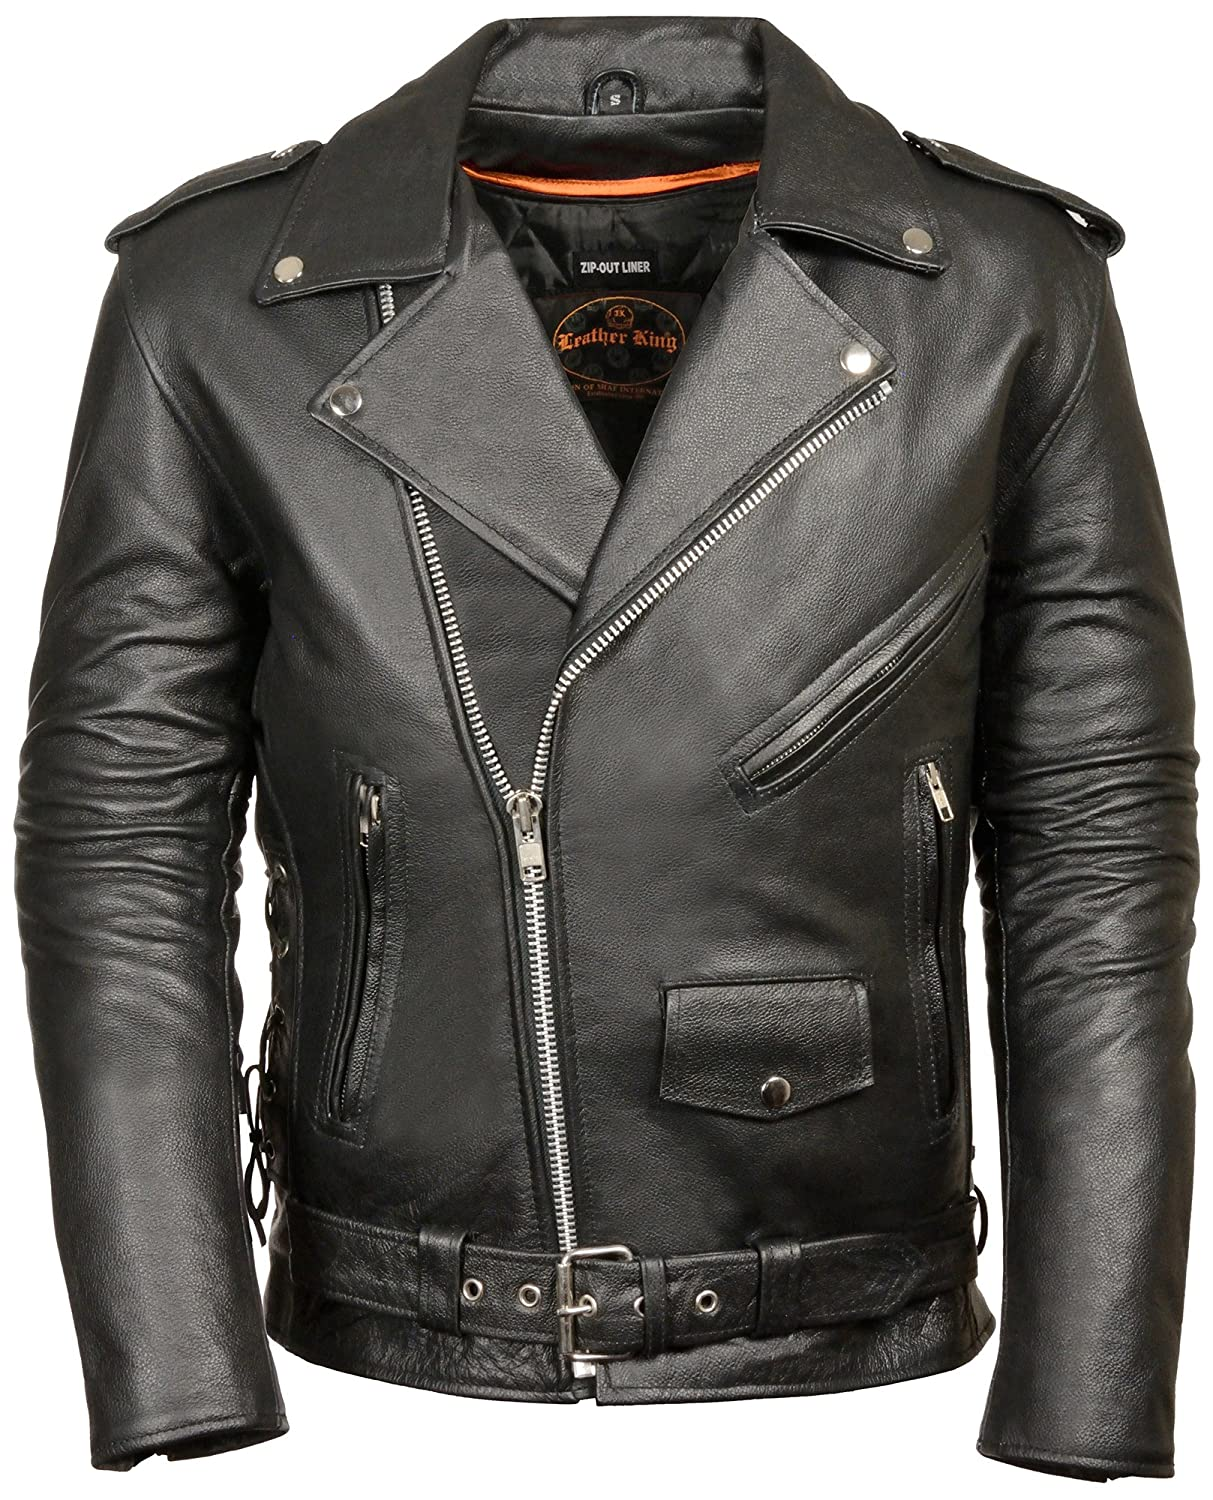 Bikers Zone Leather Jacket Review Leather King Men s Classic